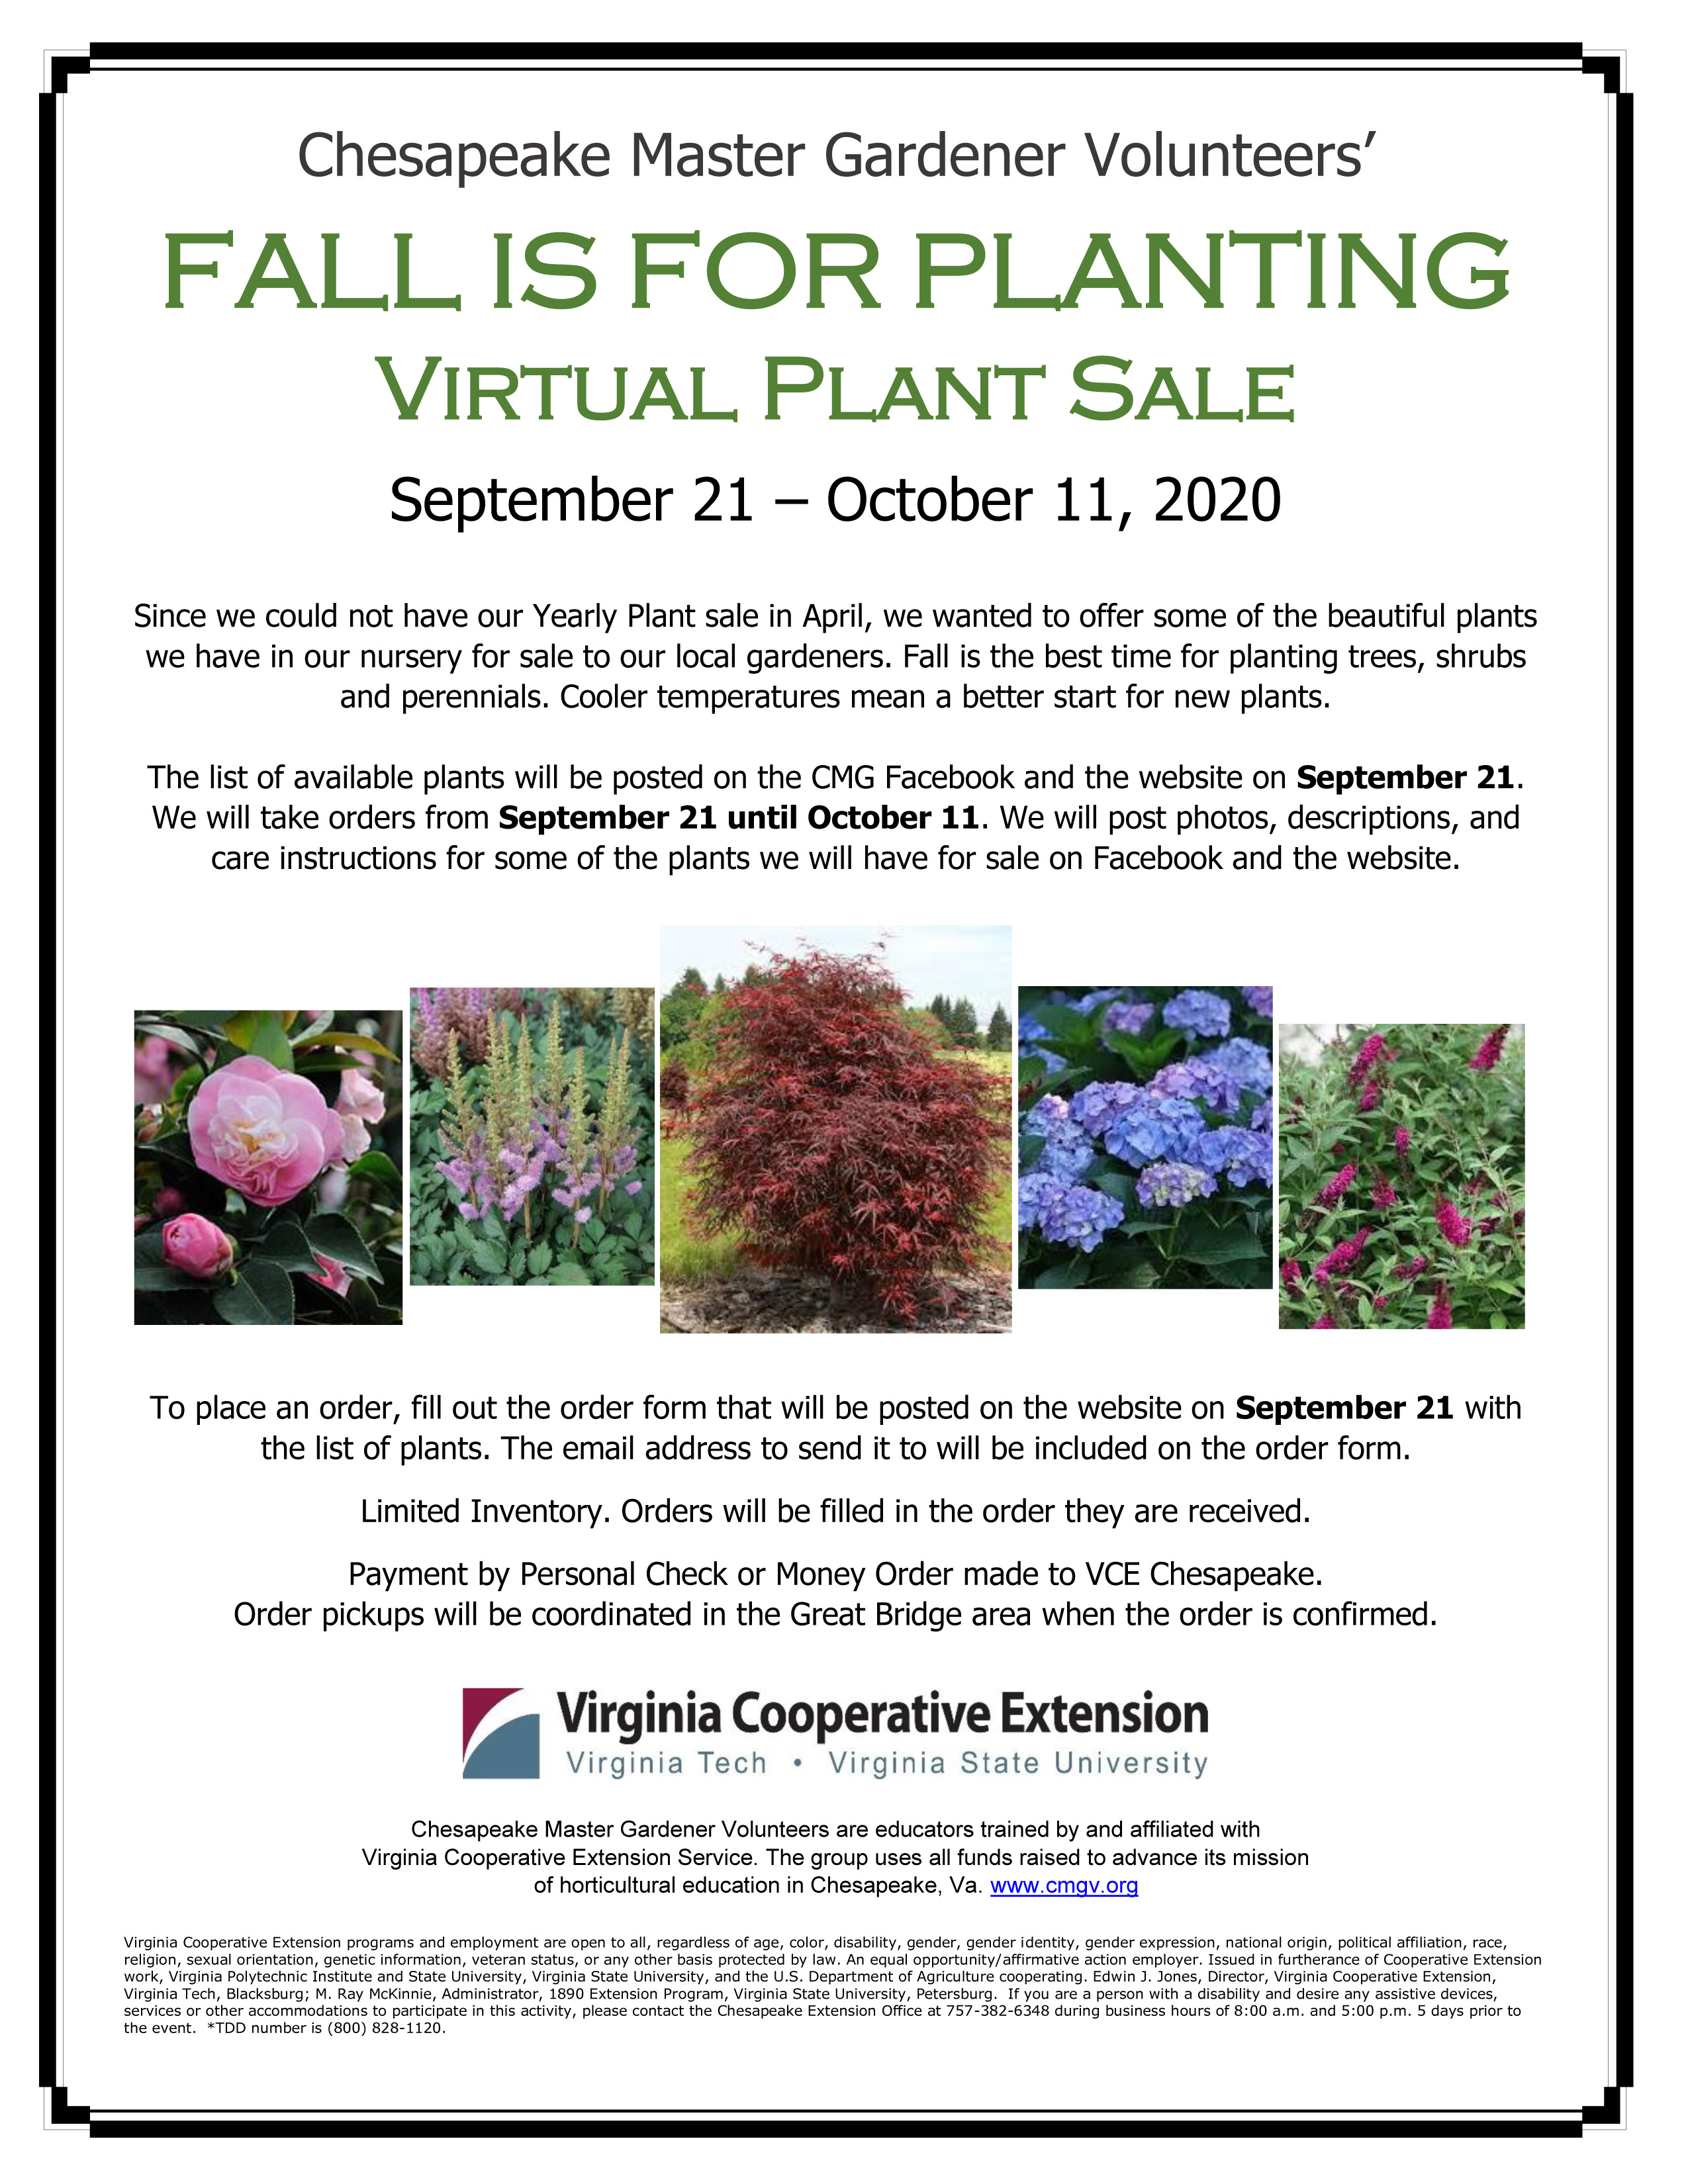 Chesapeake Master Gardeners Virtual Plant Sale Flyer 2020